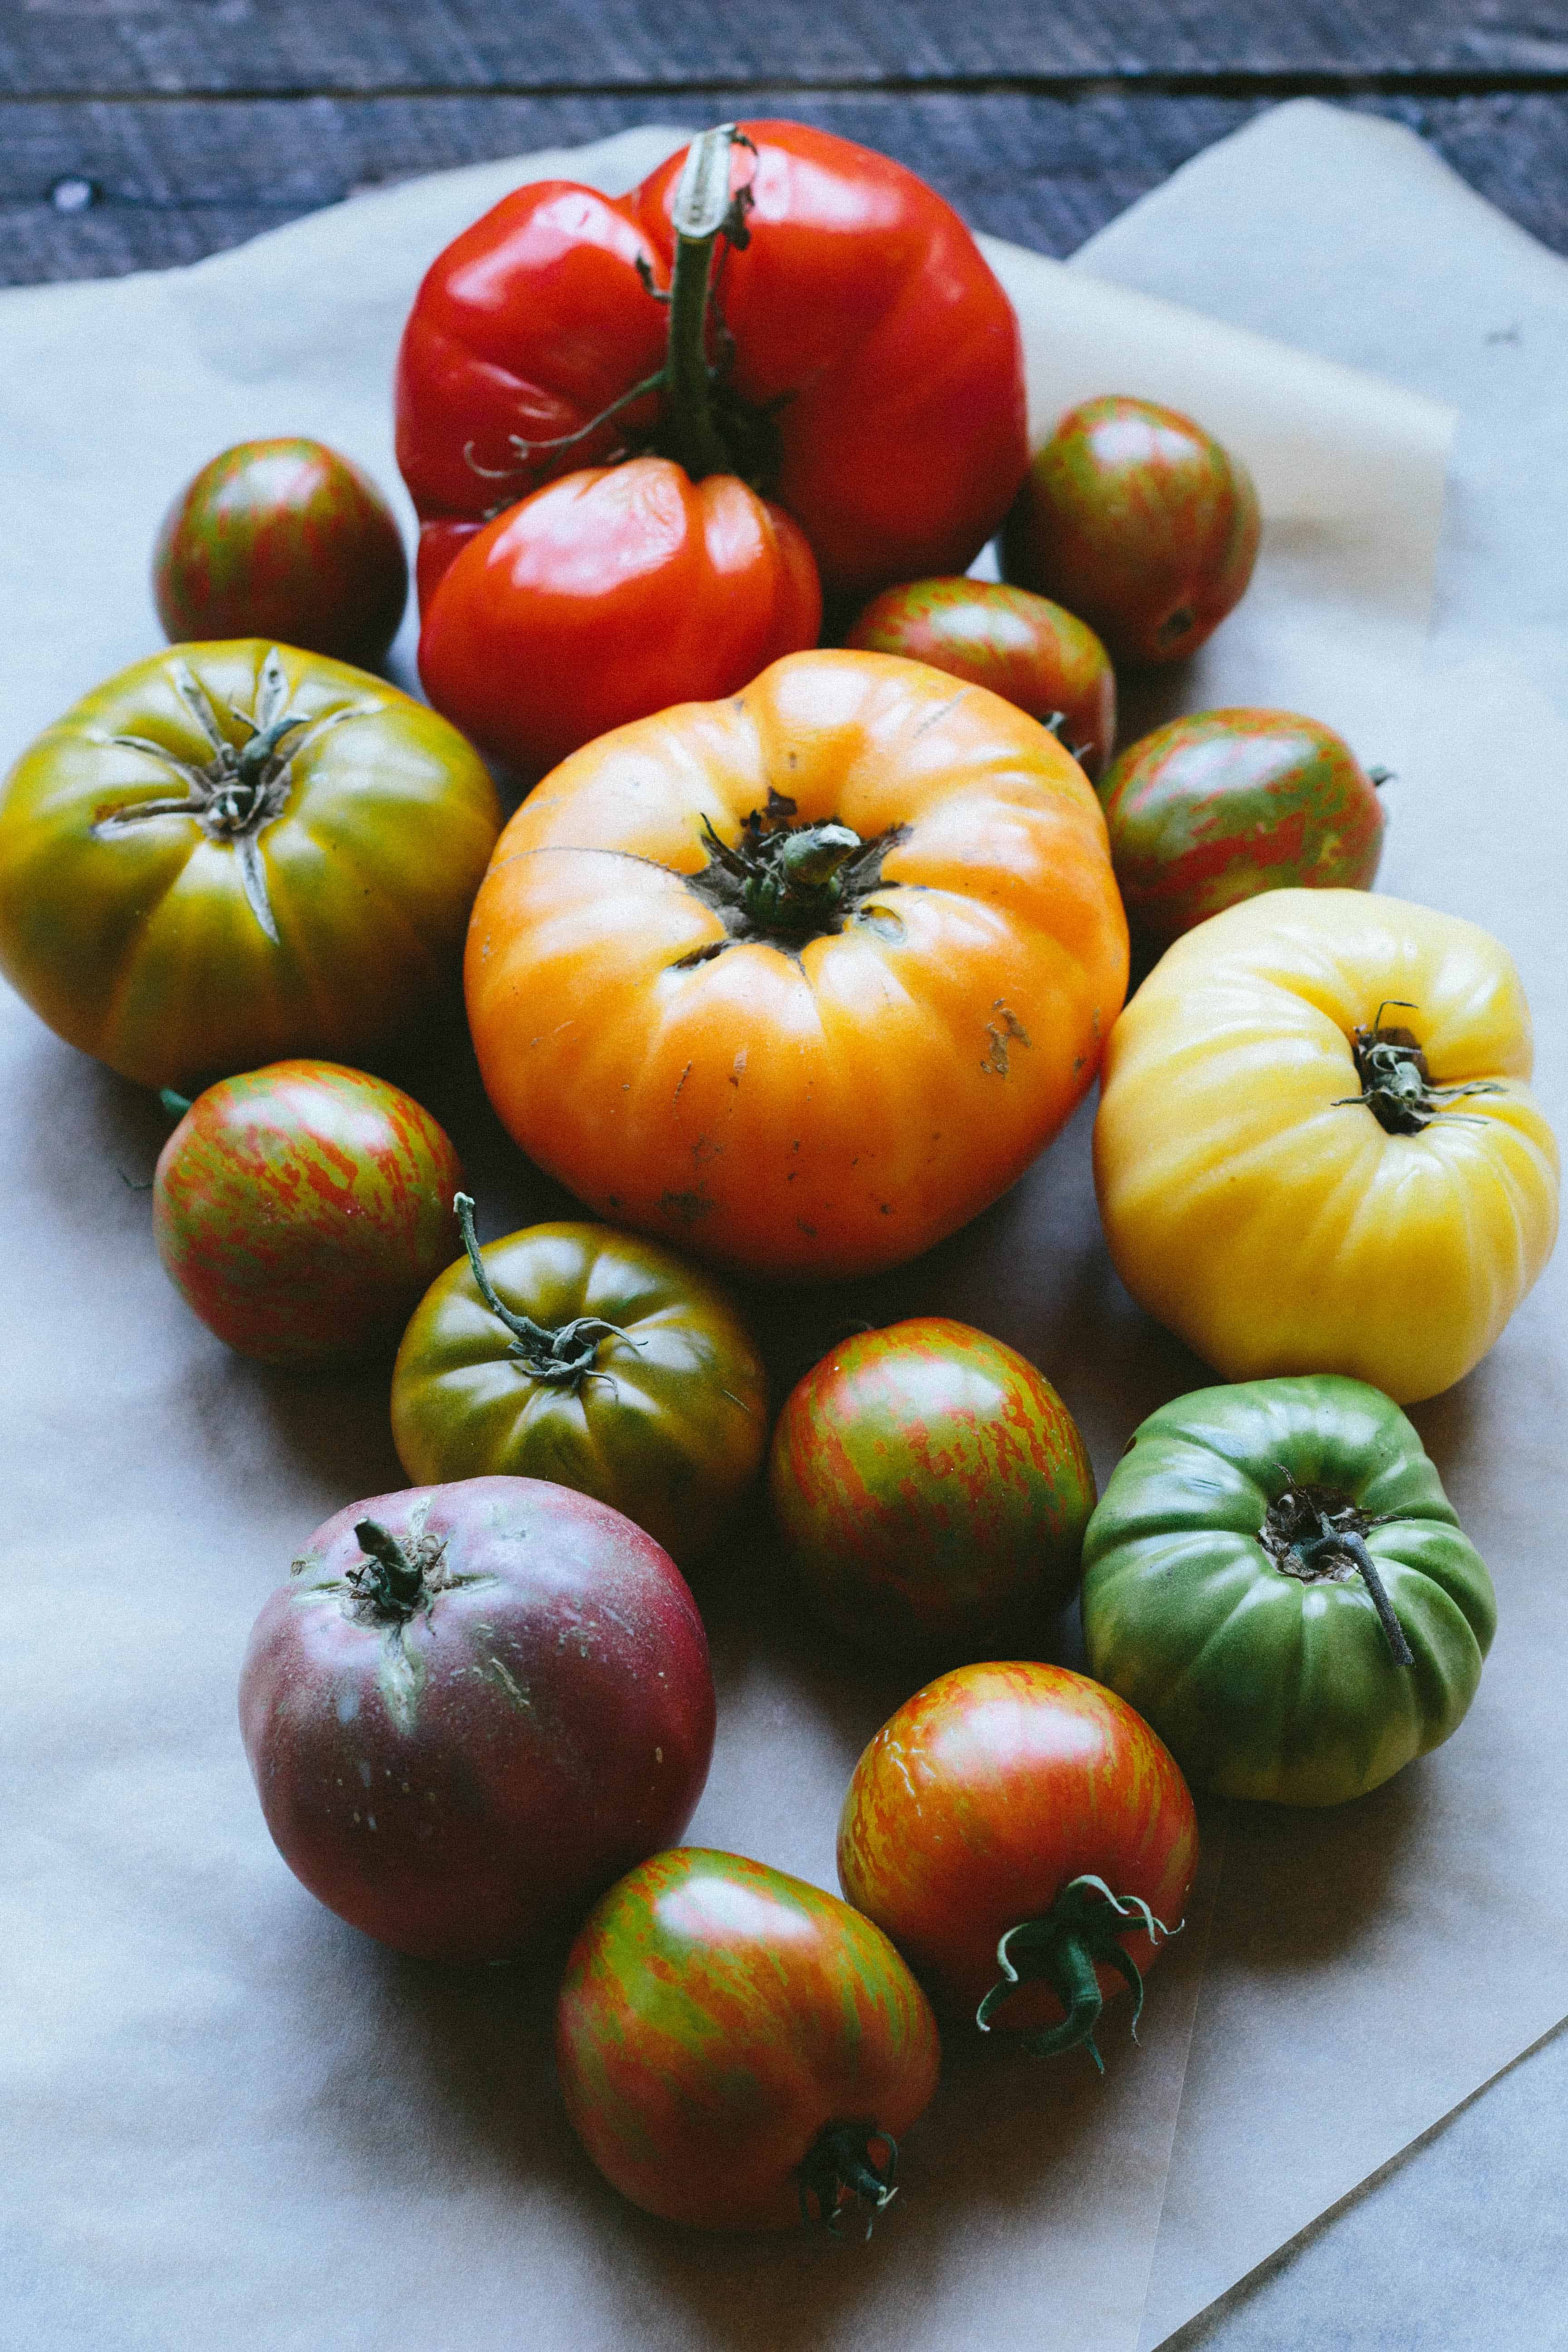 ALL ABOUT TOMATOES | How to select, store and use up all the gorgeous summer tomatoes this season. #easy #heirloom #tomatoes #garden #tomato #gardening #DIY | ColeyCooks.com